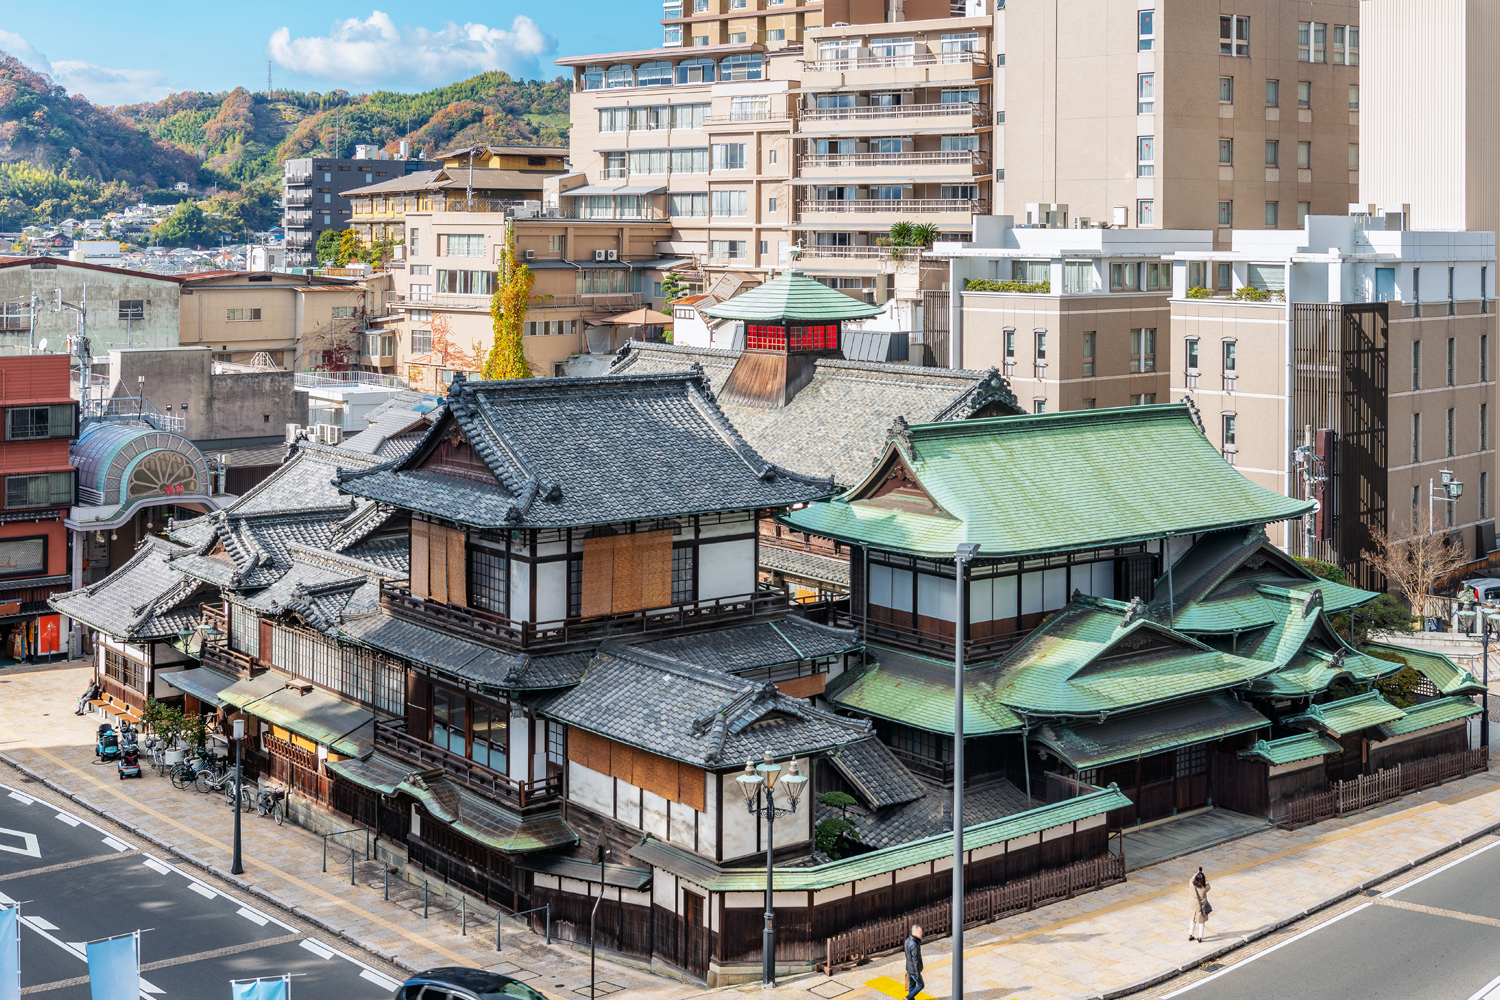 Dogo Onsen Experience The Oldest Onsen Private Package Tour